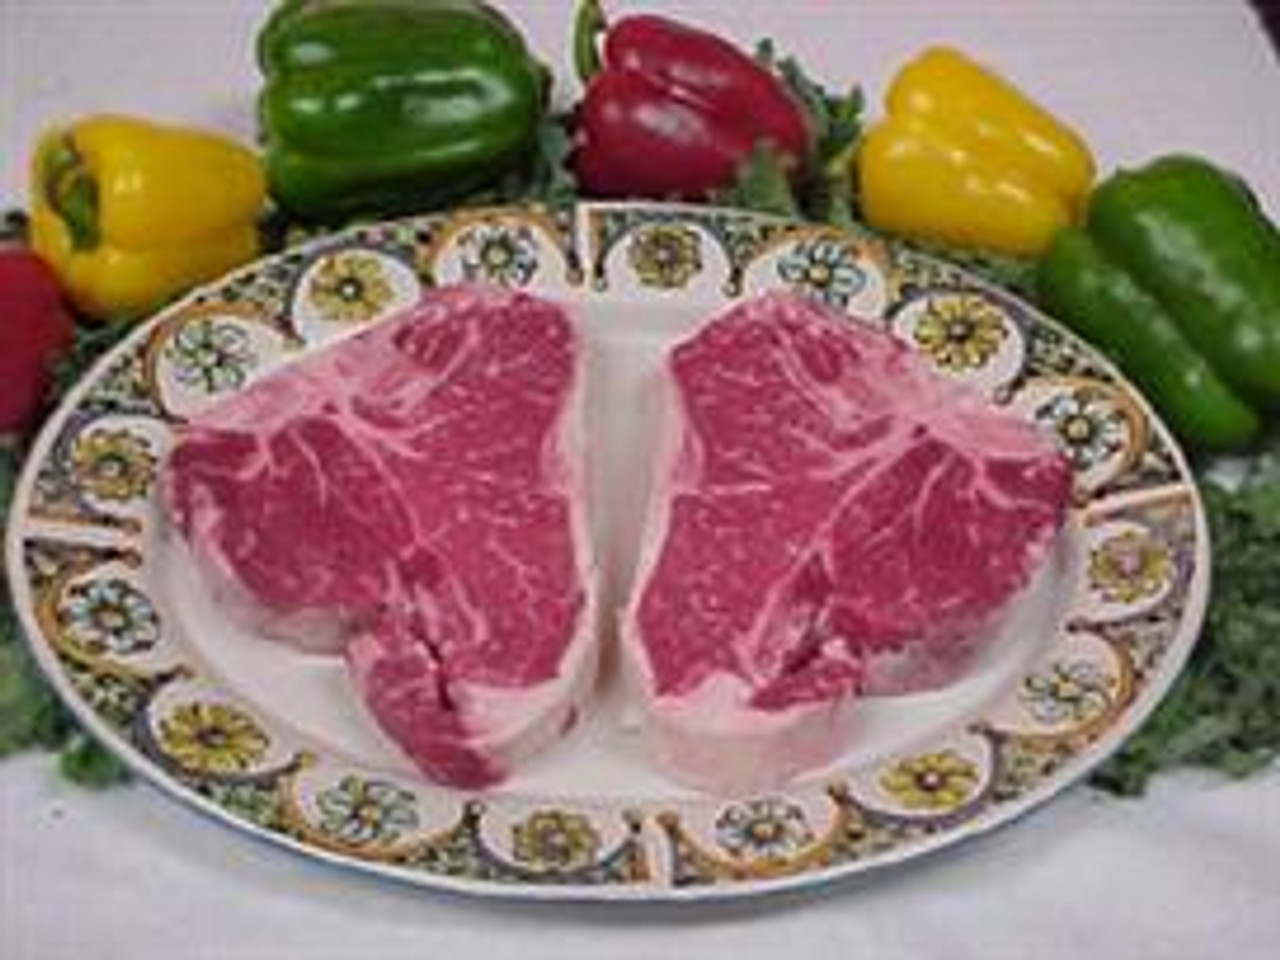 U.S.D.A. Black Angus Porterhouse Steak